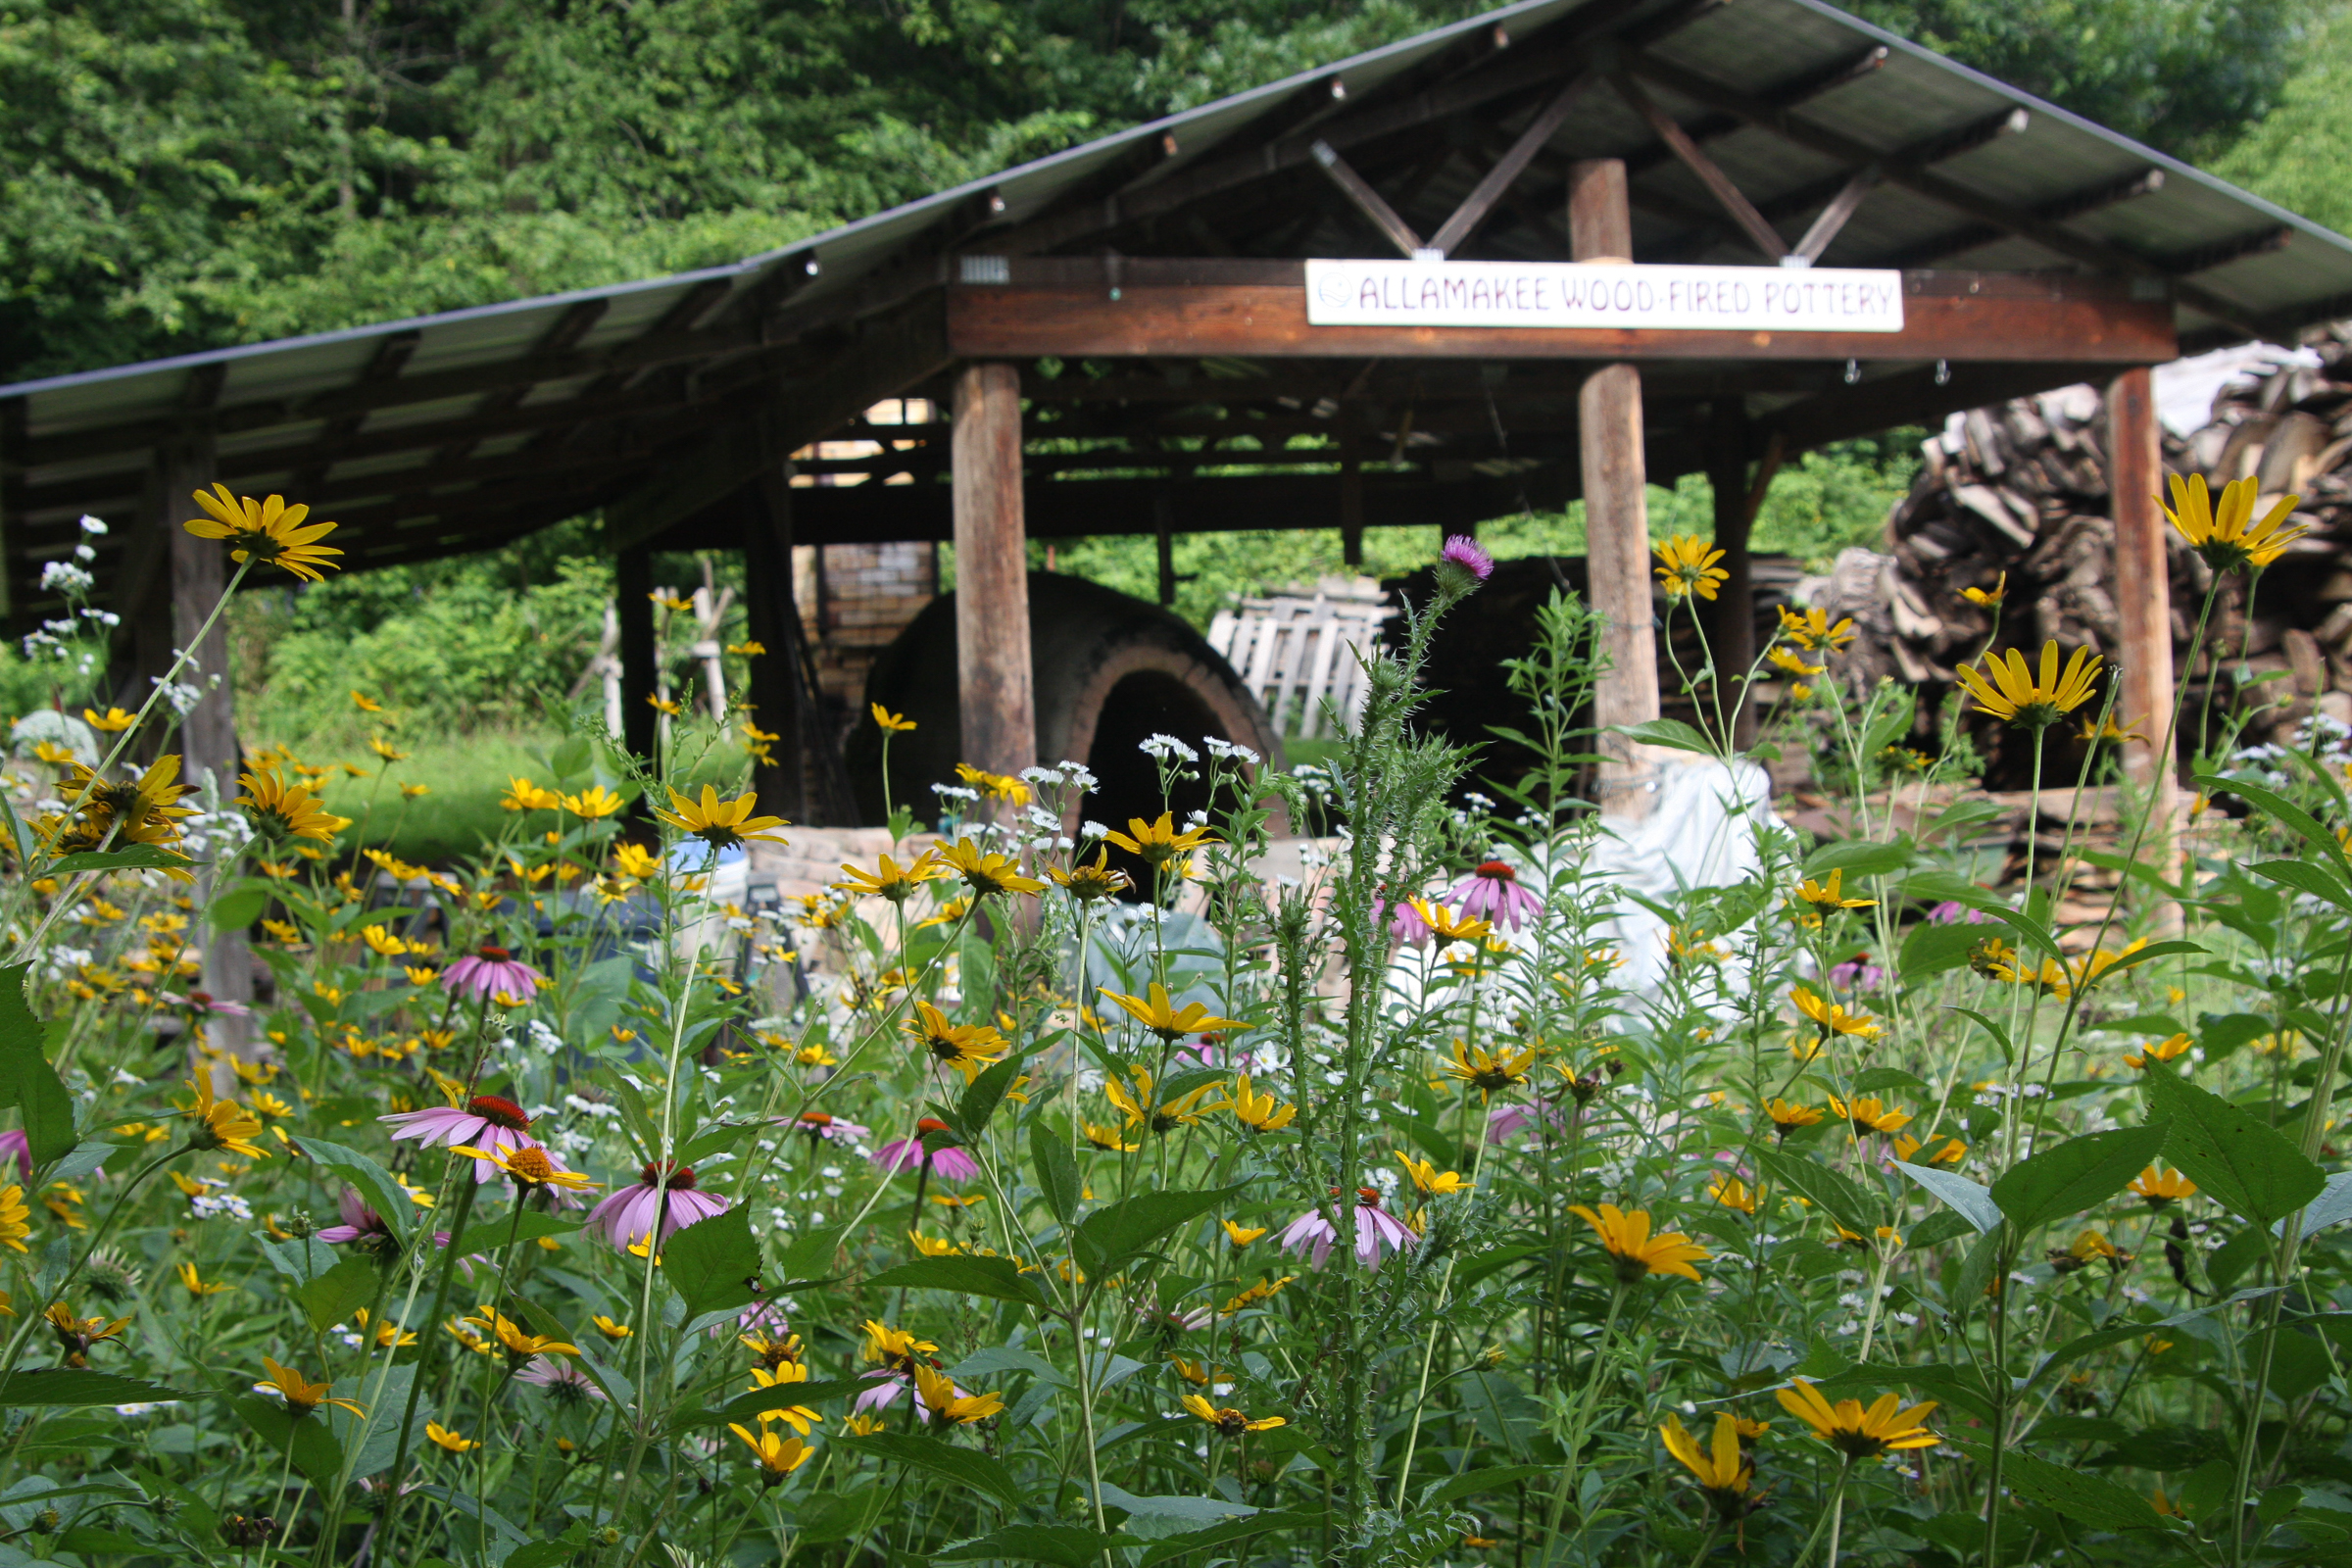 wood-fired kiln and wildflowers